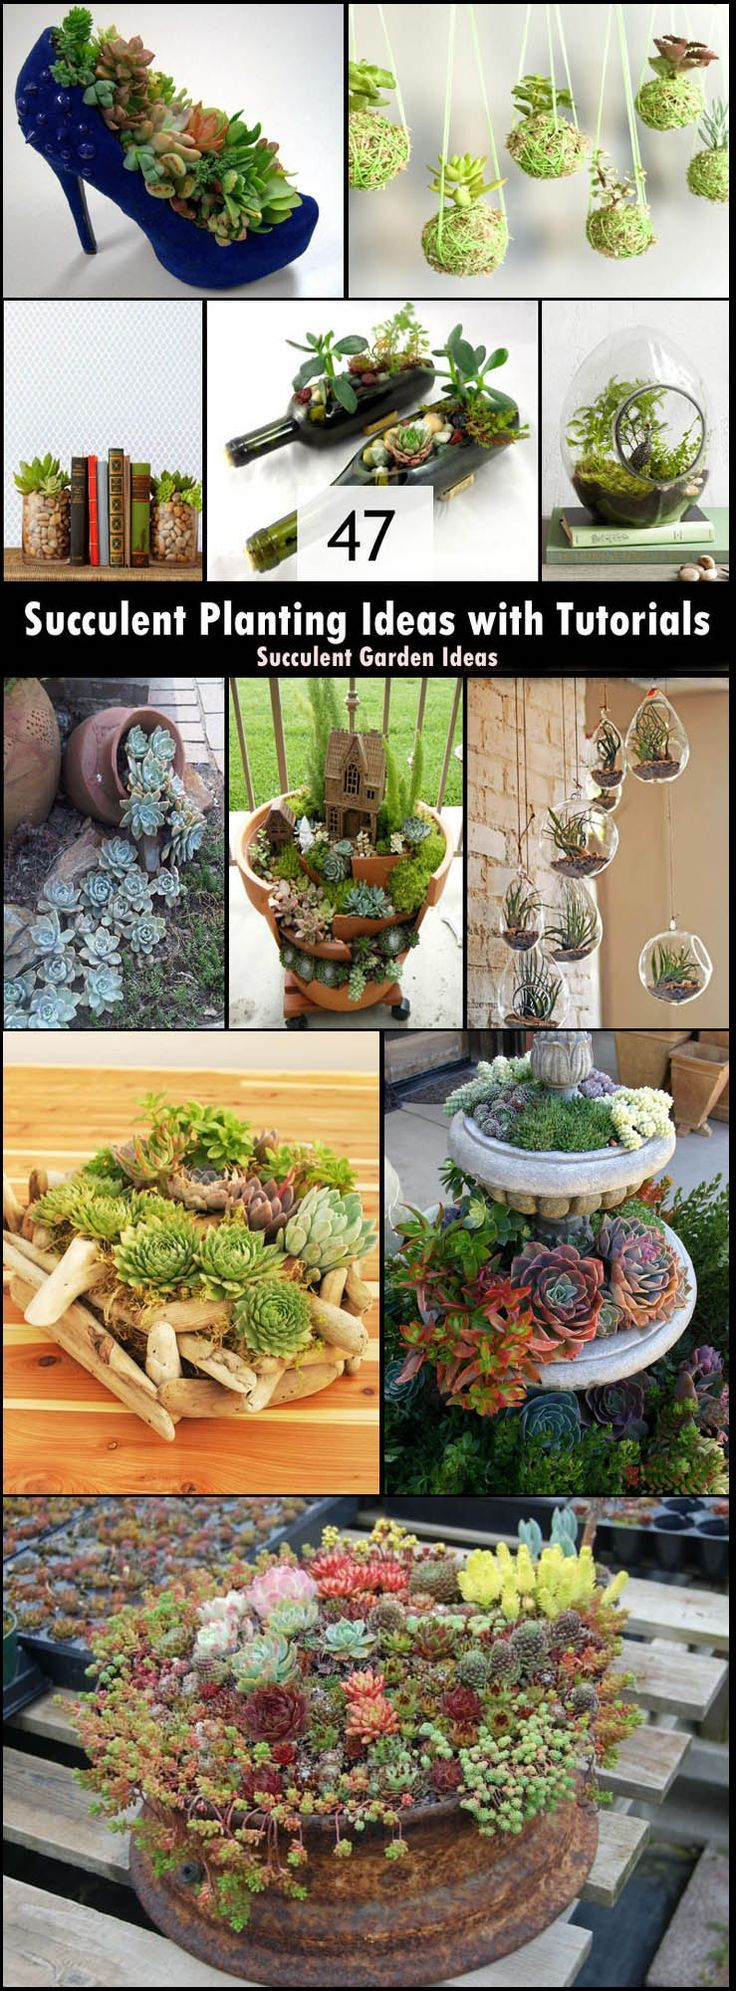 117 best urban gardening images on pinterest | plants, garden and